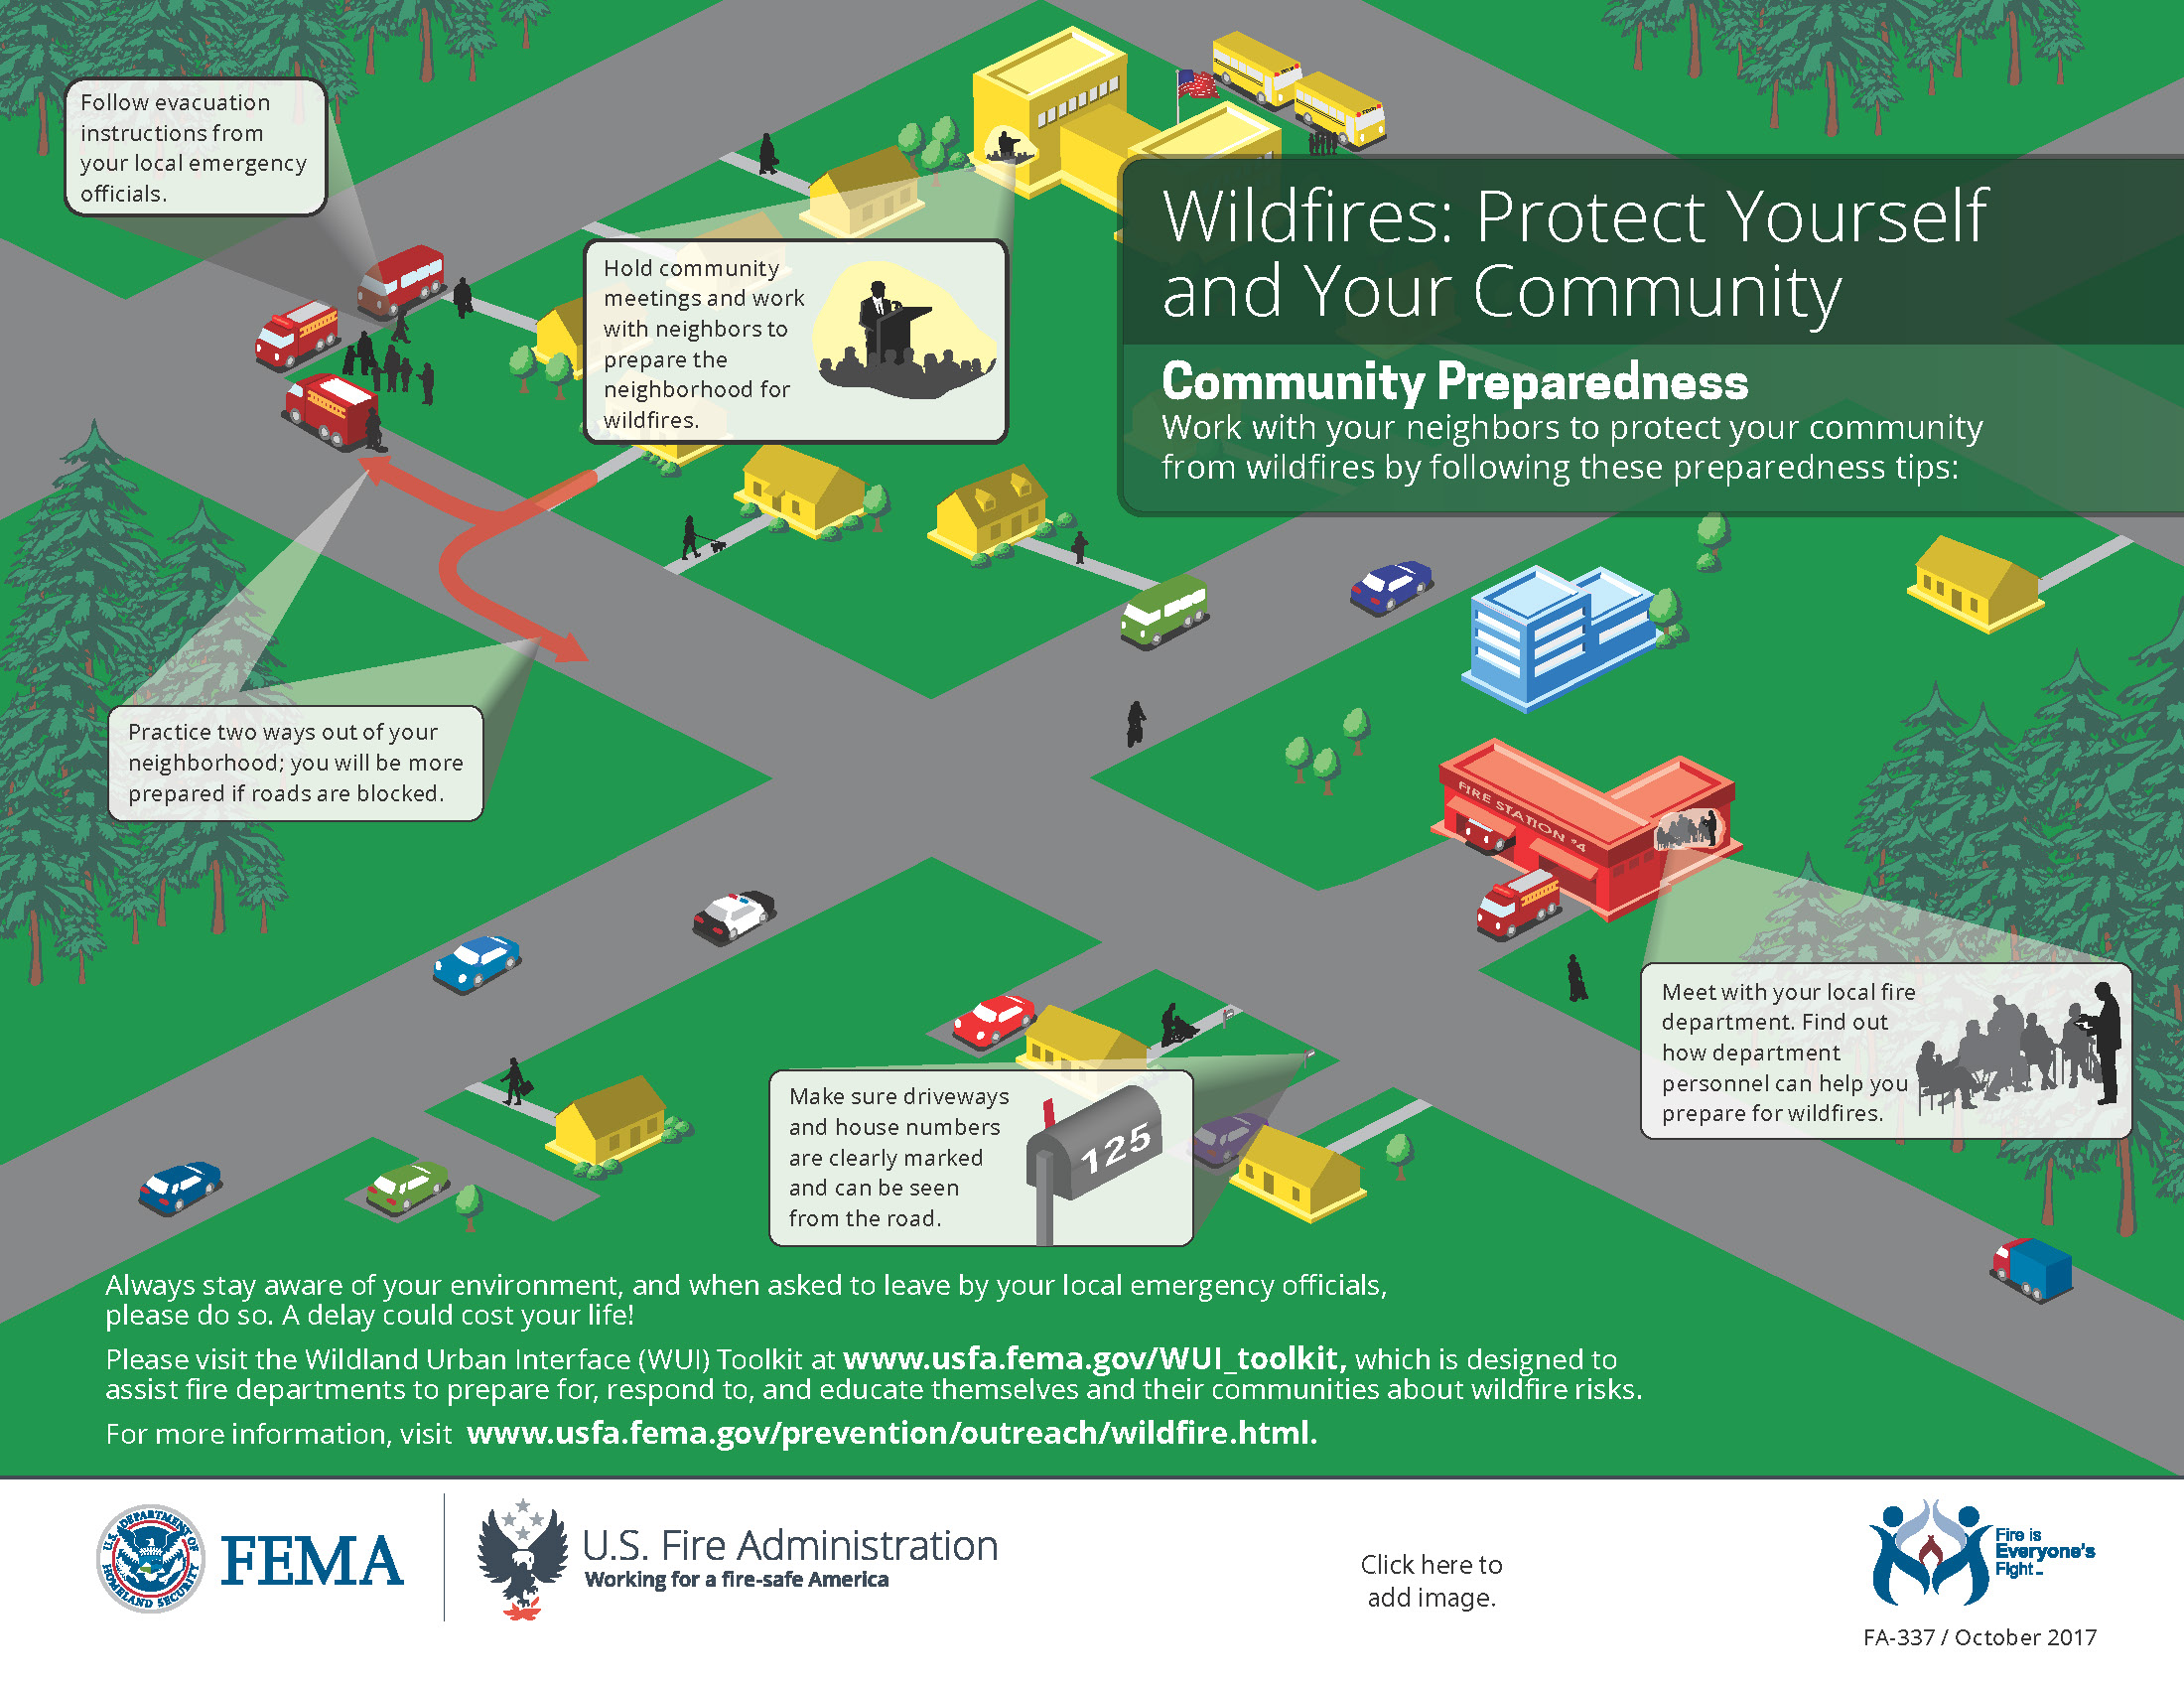 Wildfires: Protect Yourself and Your Community